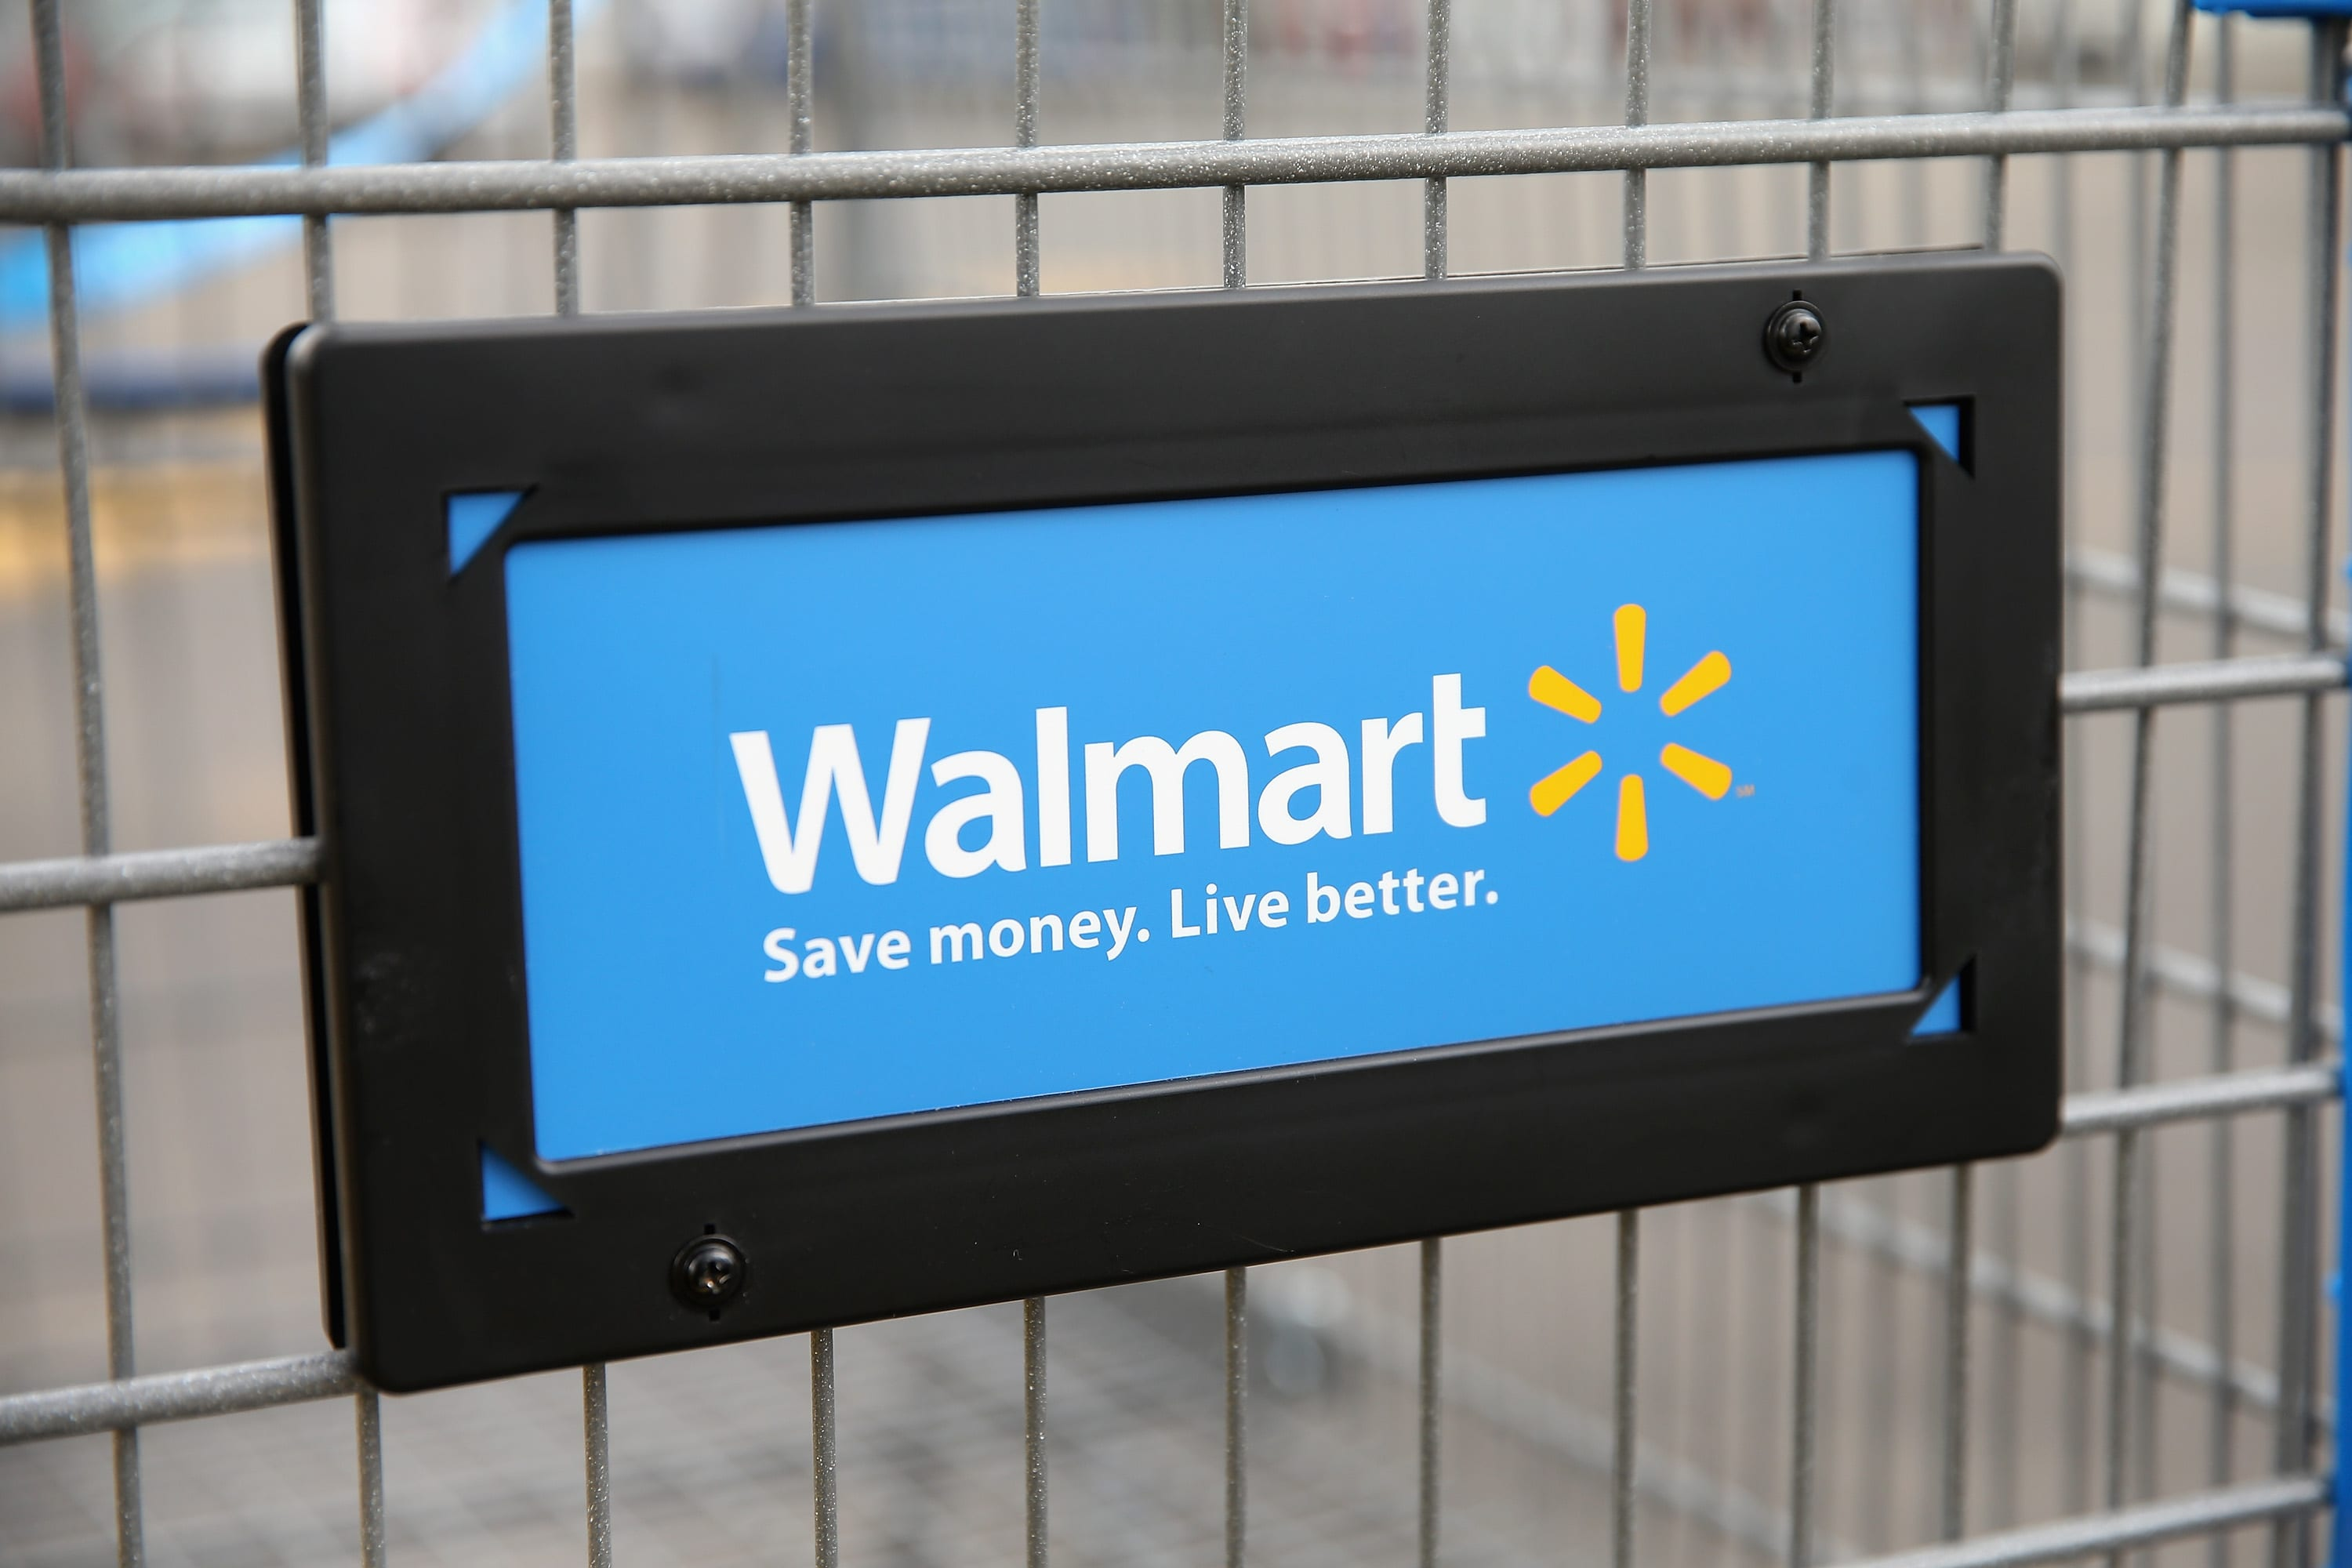 Wal-Mart response to pricing glitch not unusual, say experts